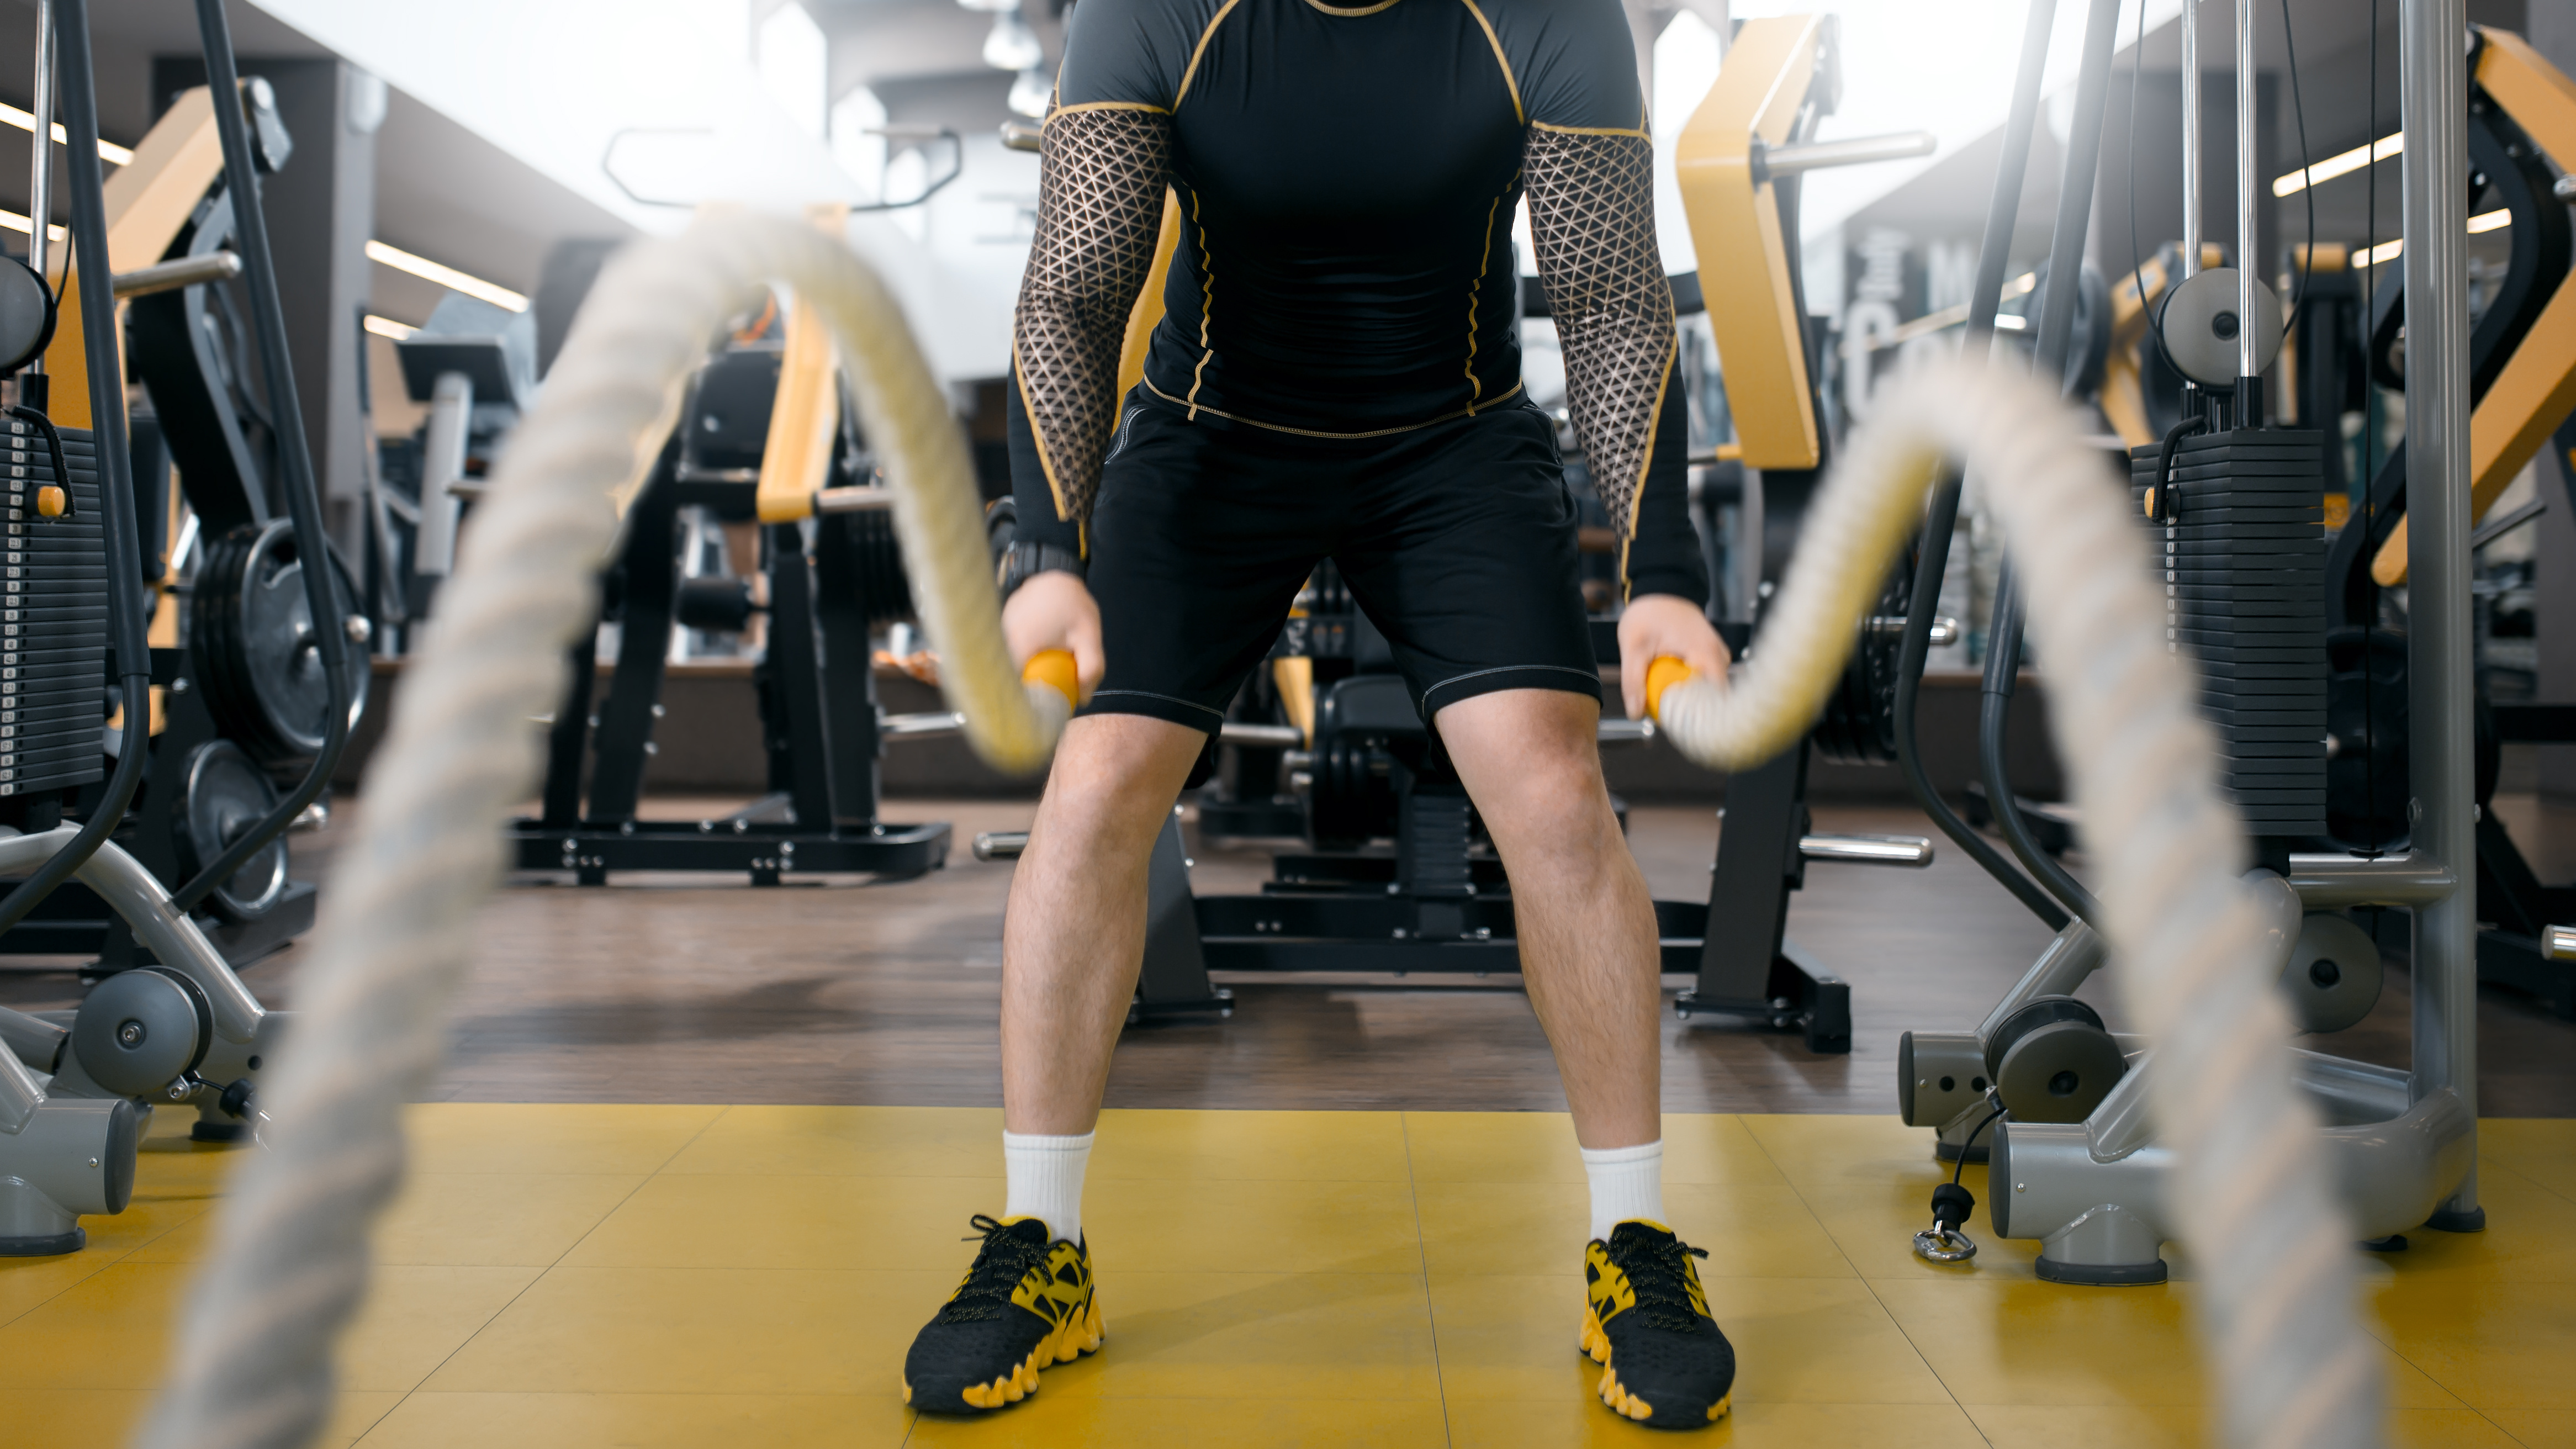 Muscleropes Com The Strongest Name In Battle Ropes